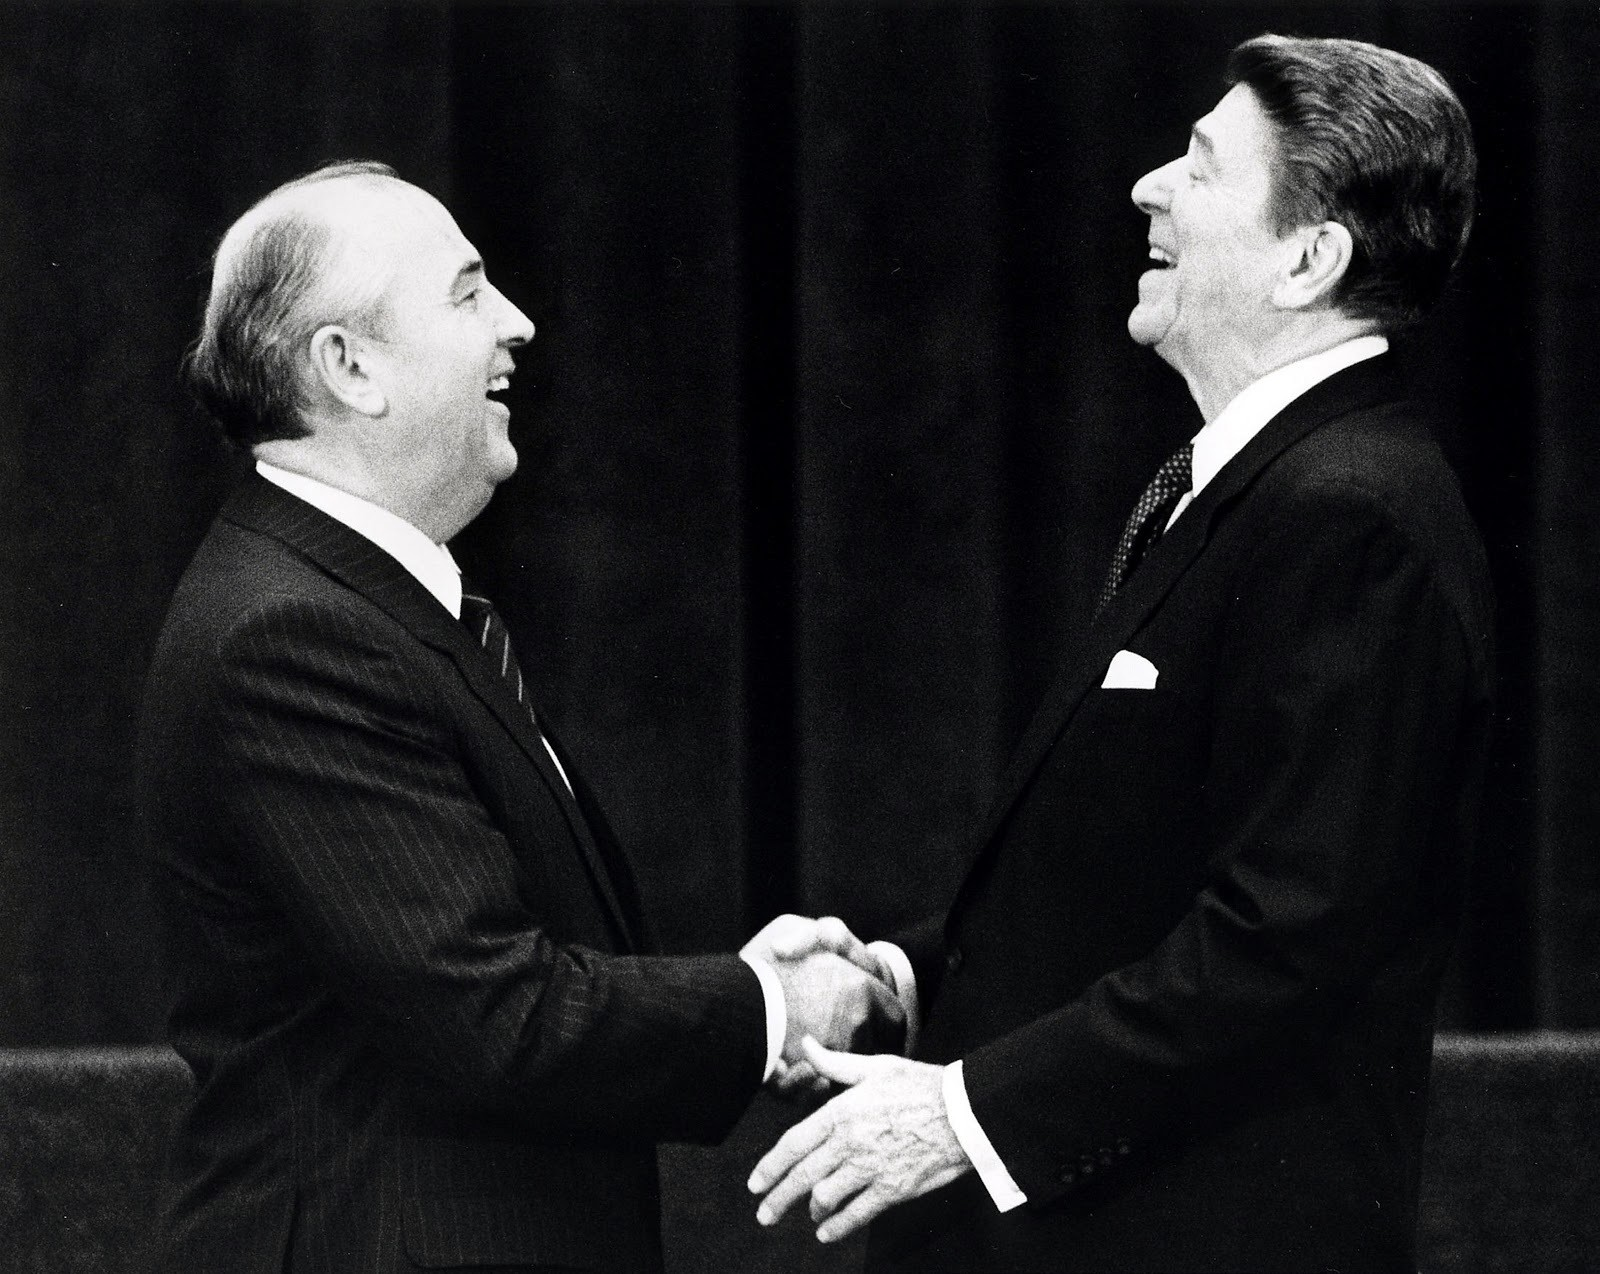 U.S. President Ronald Reagan (R) shakes hands at his first meeting with Soviet leader Mikhail Gorbachev to sign an arms treaty in Geneva, in this November 19, 1985 file photo. The two leaders met for the first time to hold talks on international diplomatic relations and the arms race.  REUTERS/Denis Paquin/Files (SWITZERLAND - Tags: POLITICS PROFILE TPX IMAGES OF THE DAY)ATTENTION EDITORS - THIS PICTURE IS PART OF PACKAGE '30 YEARS OF REUTERS PICTURES'TO FIND ALL 56 IMAGES SEARCH '30 YEARS' - LM2EB2A0WGZ01